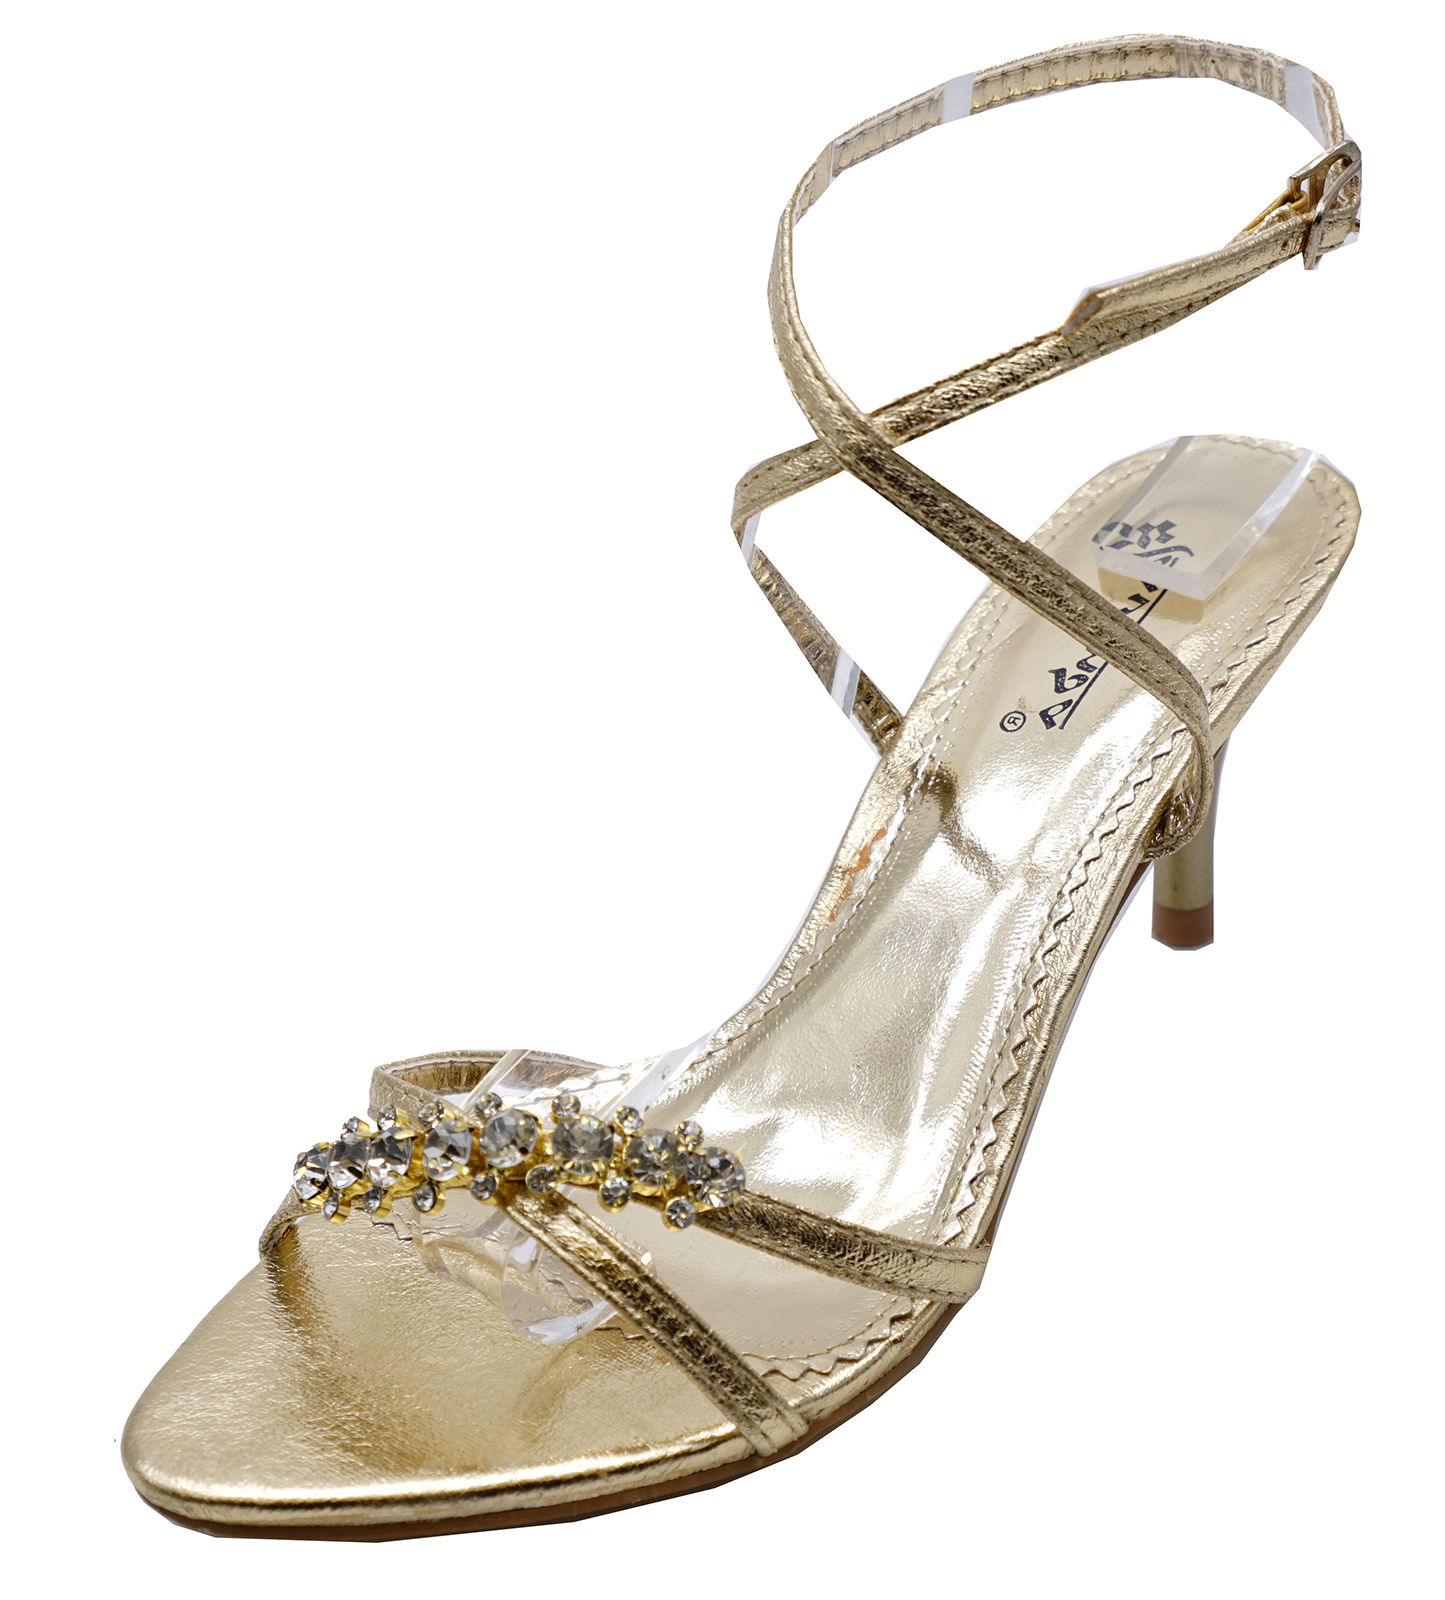 73bc14d2b91 Ladies Gold Kitten Heel Strappy Evening Diamante Elegant Sandals Shoes UK  3-8. About this product. Picture 1 of 4  Picture 2 of 4  Picture 3 of 4 ...